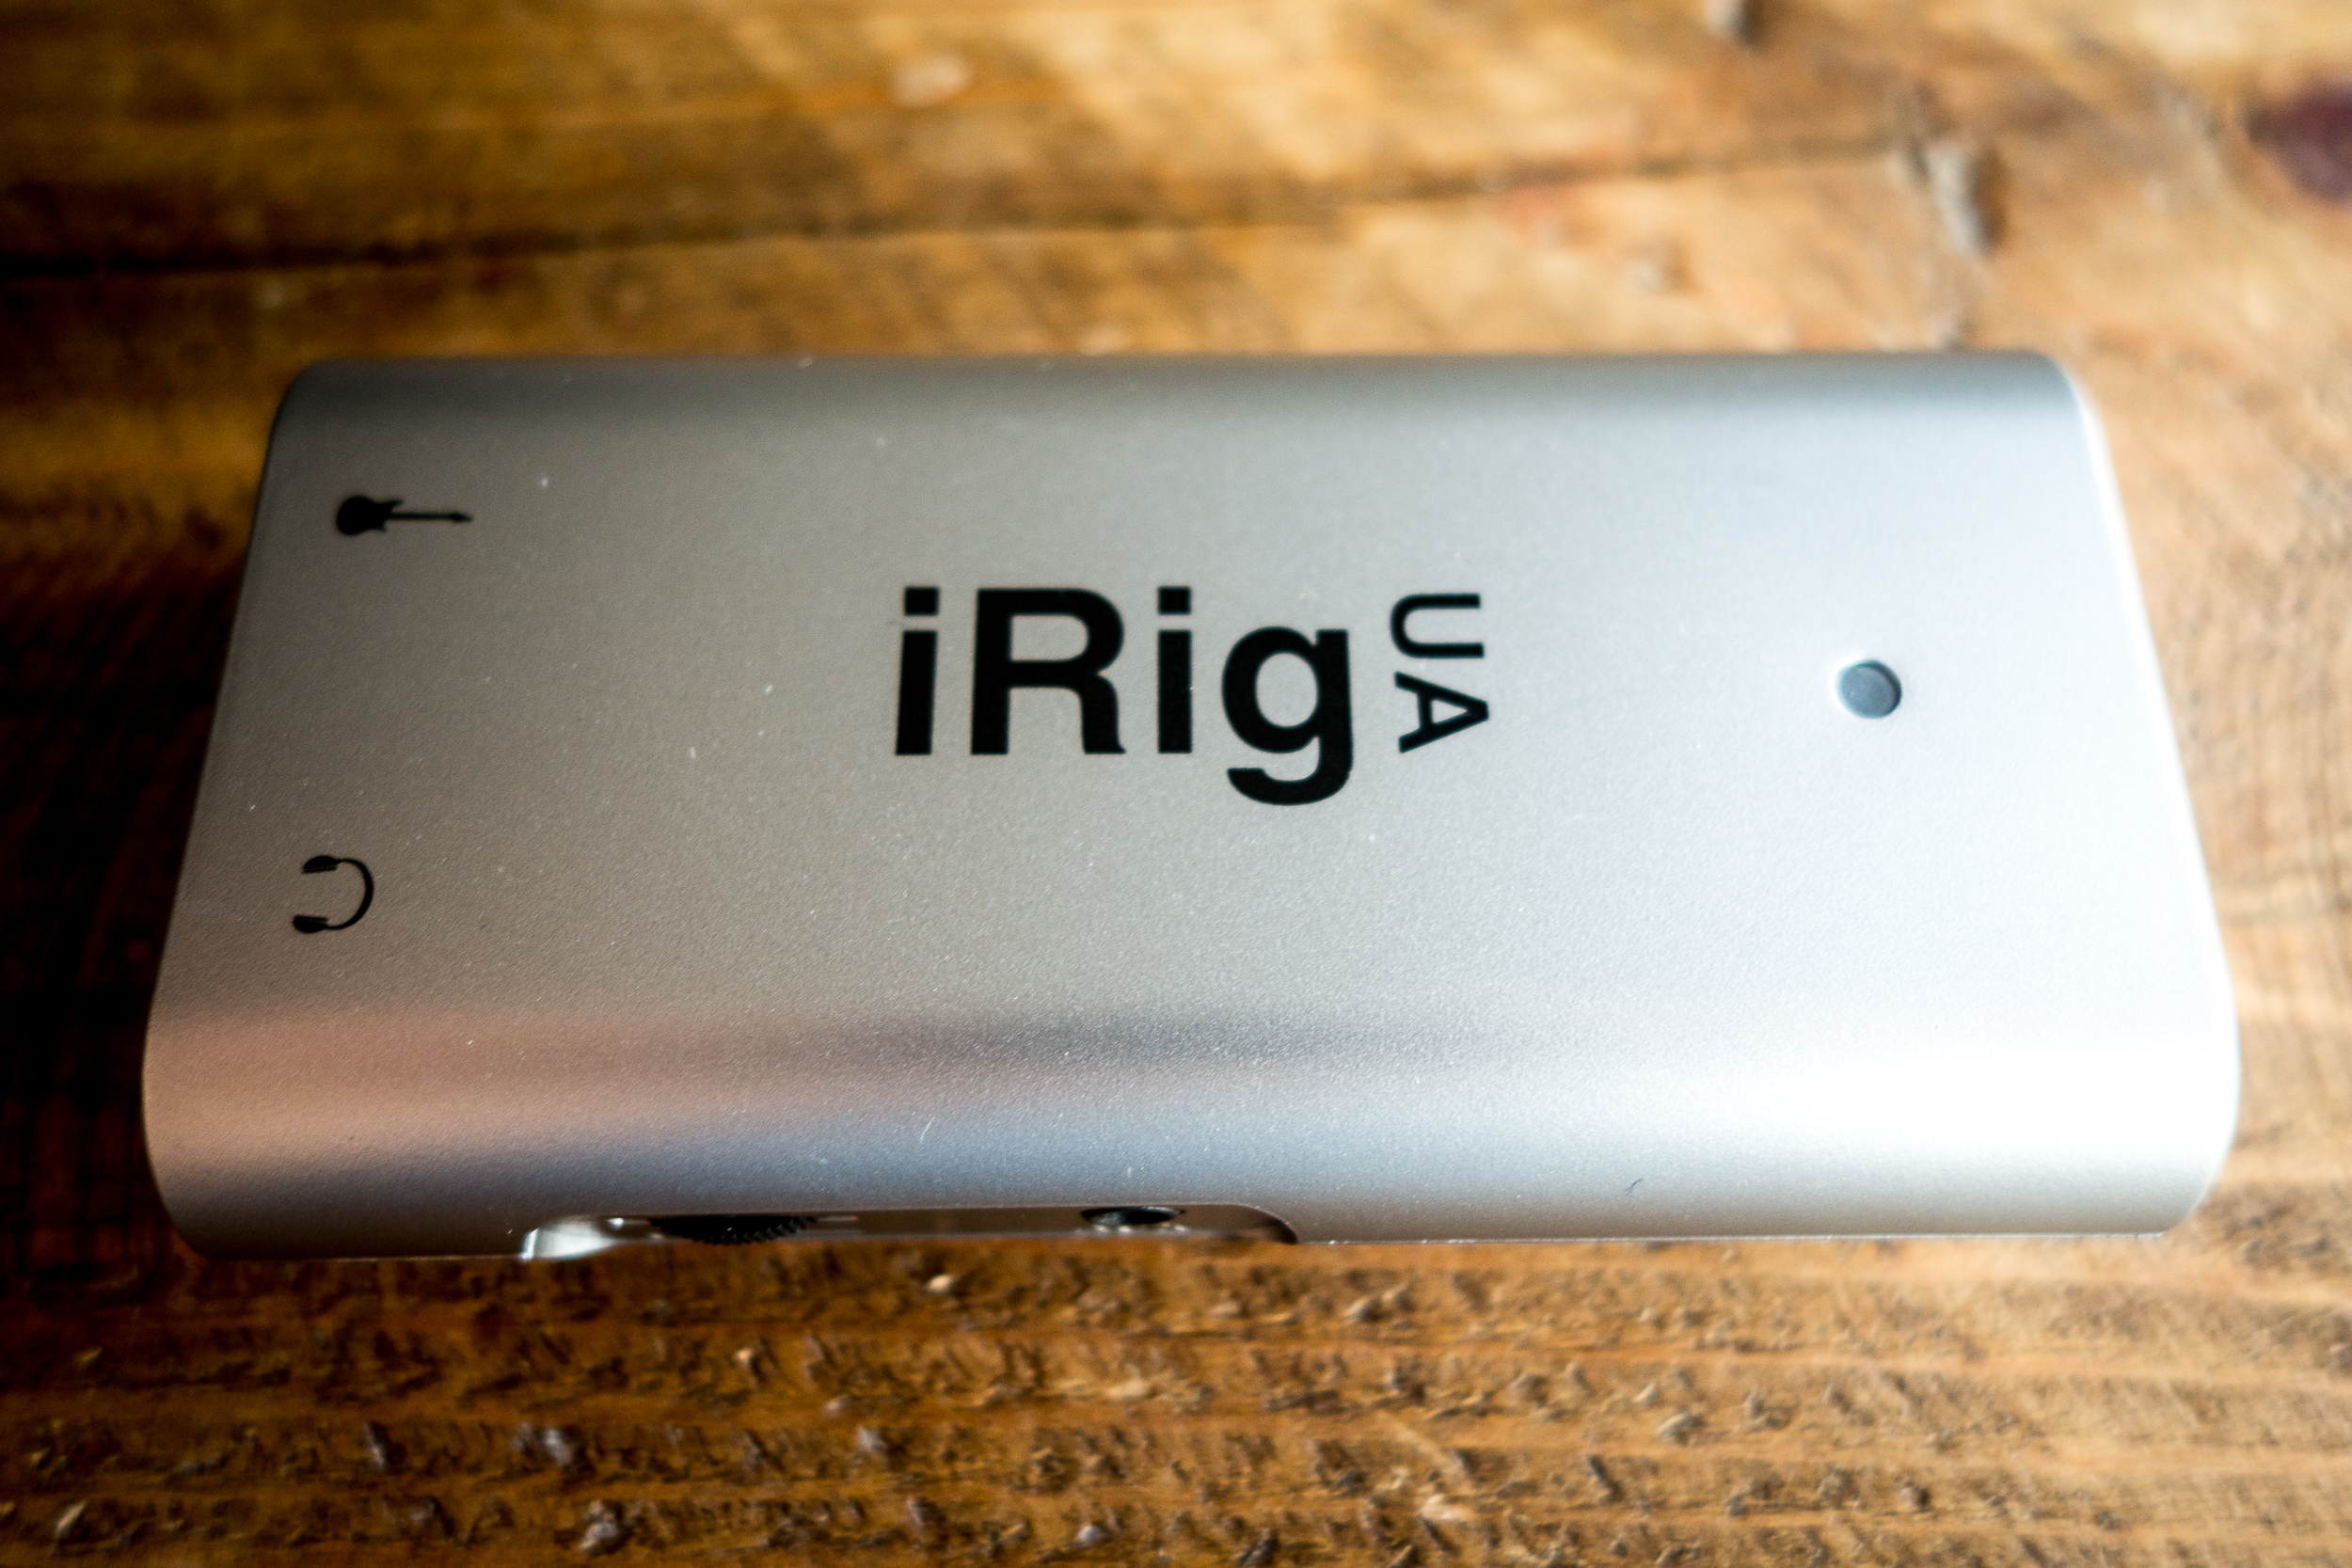 Review Irig Ua Finally Brings Amp Modelling To Android But Lacks Electrical Wiring Reassurance With Diagram Diy Enlarge